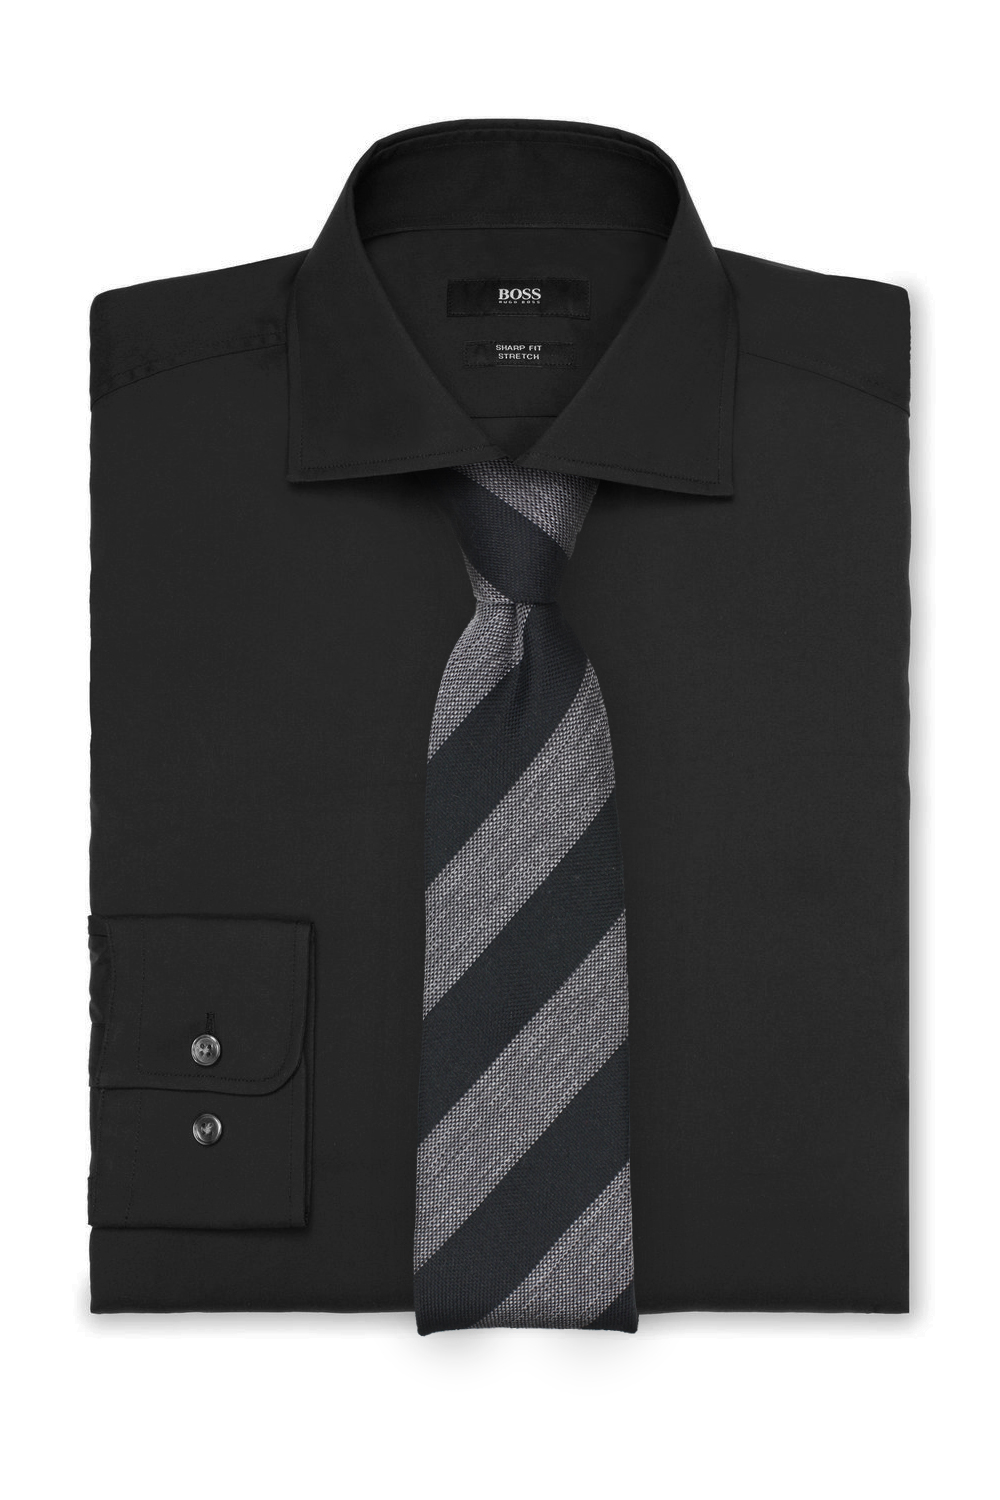 Trendy Striped Tie in Gray and Black